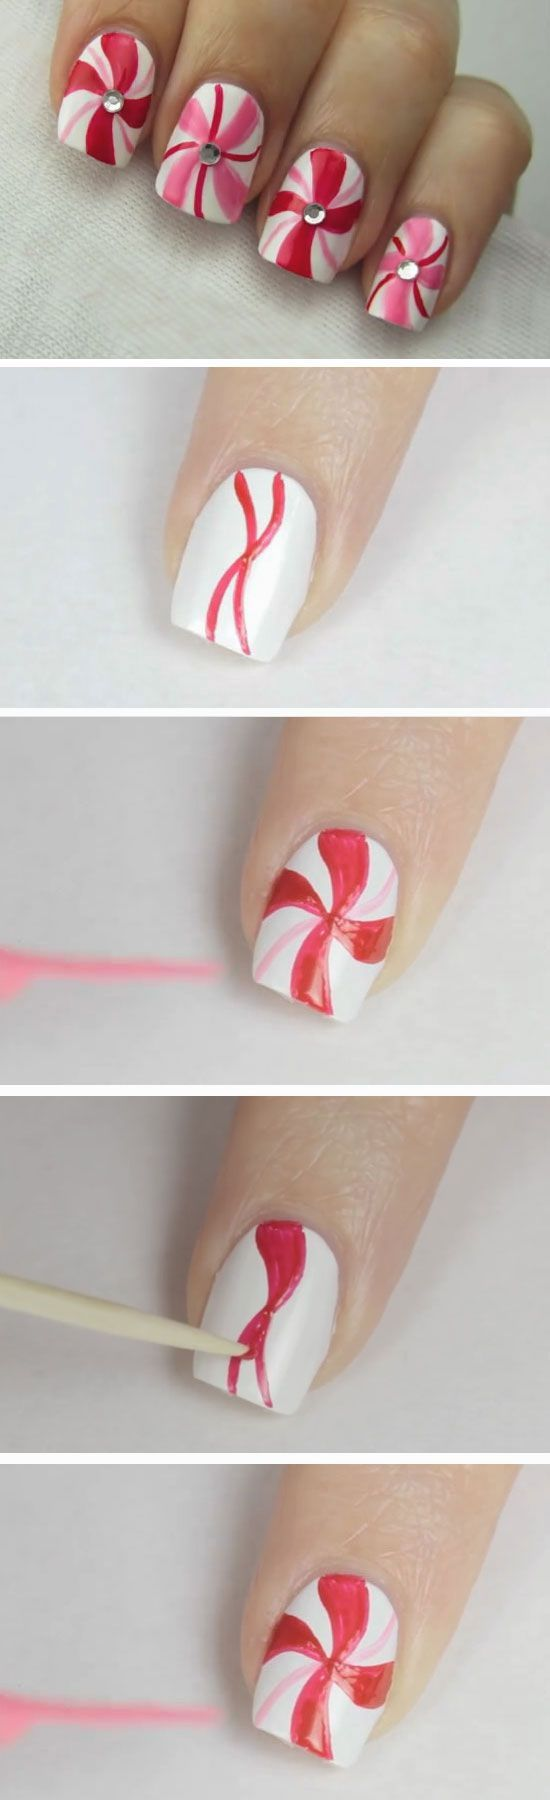 Peppermint Swirls | Short nails, Designs nail art and Nail salons